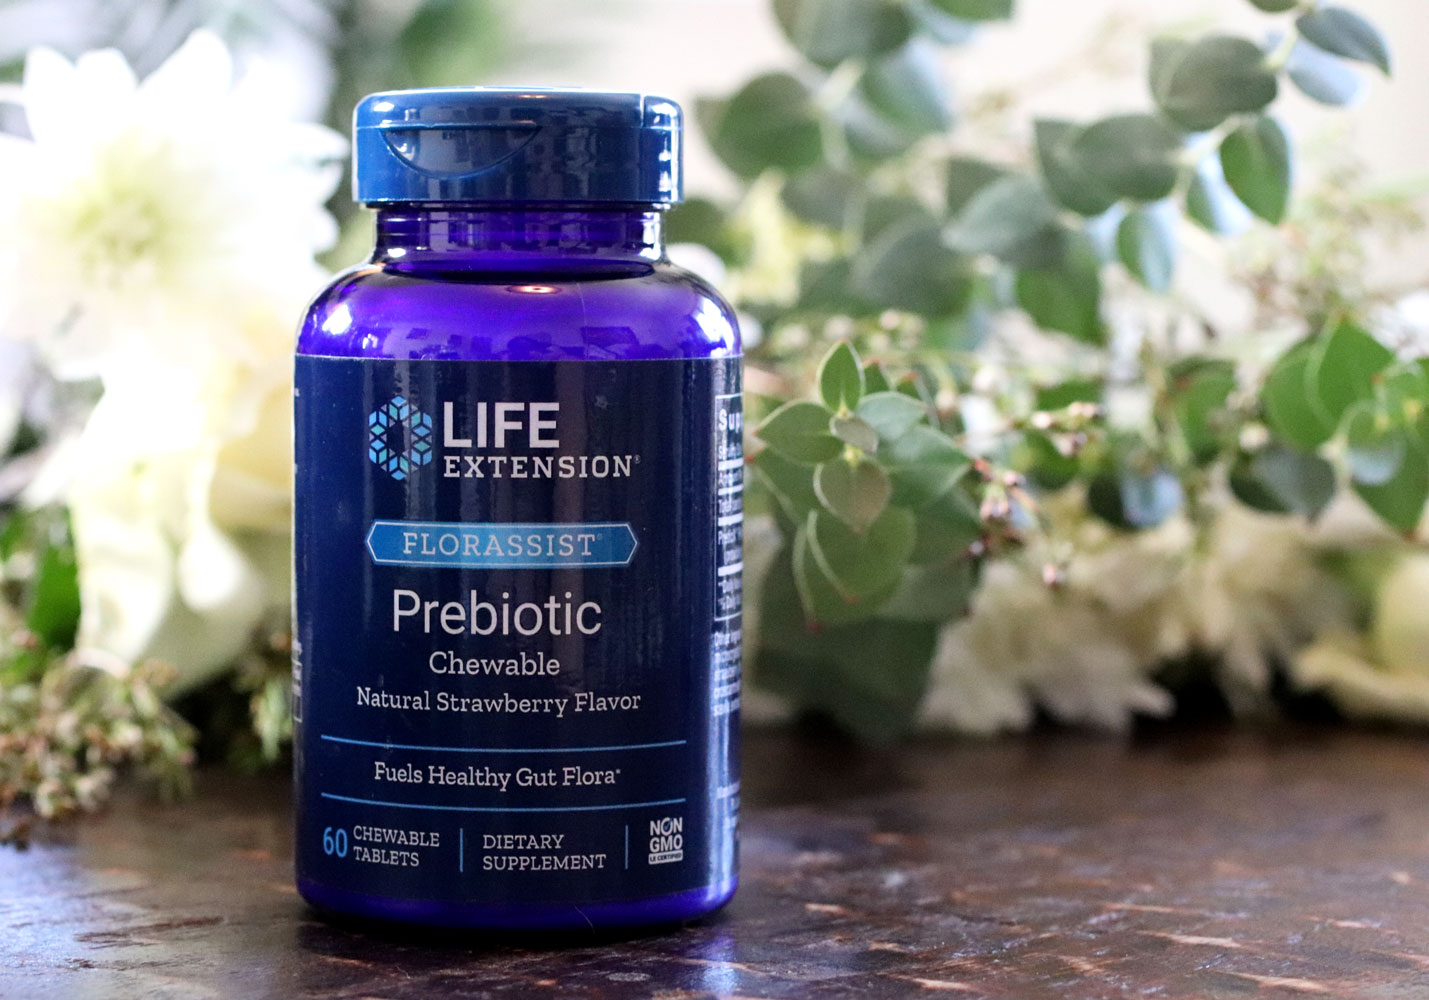 Florassist Prebiotic by Life Extension